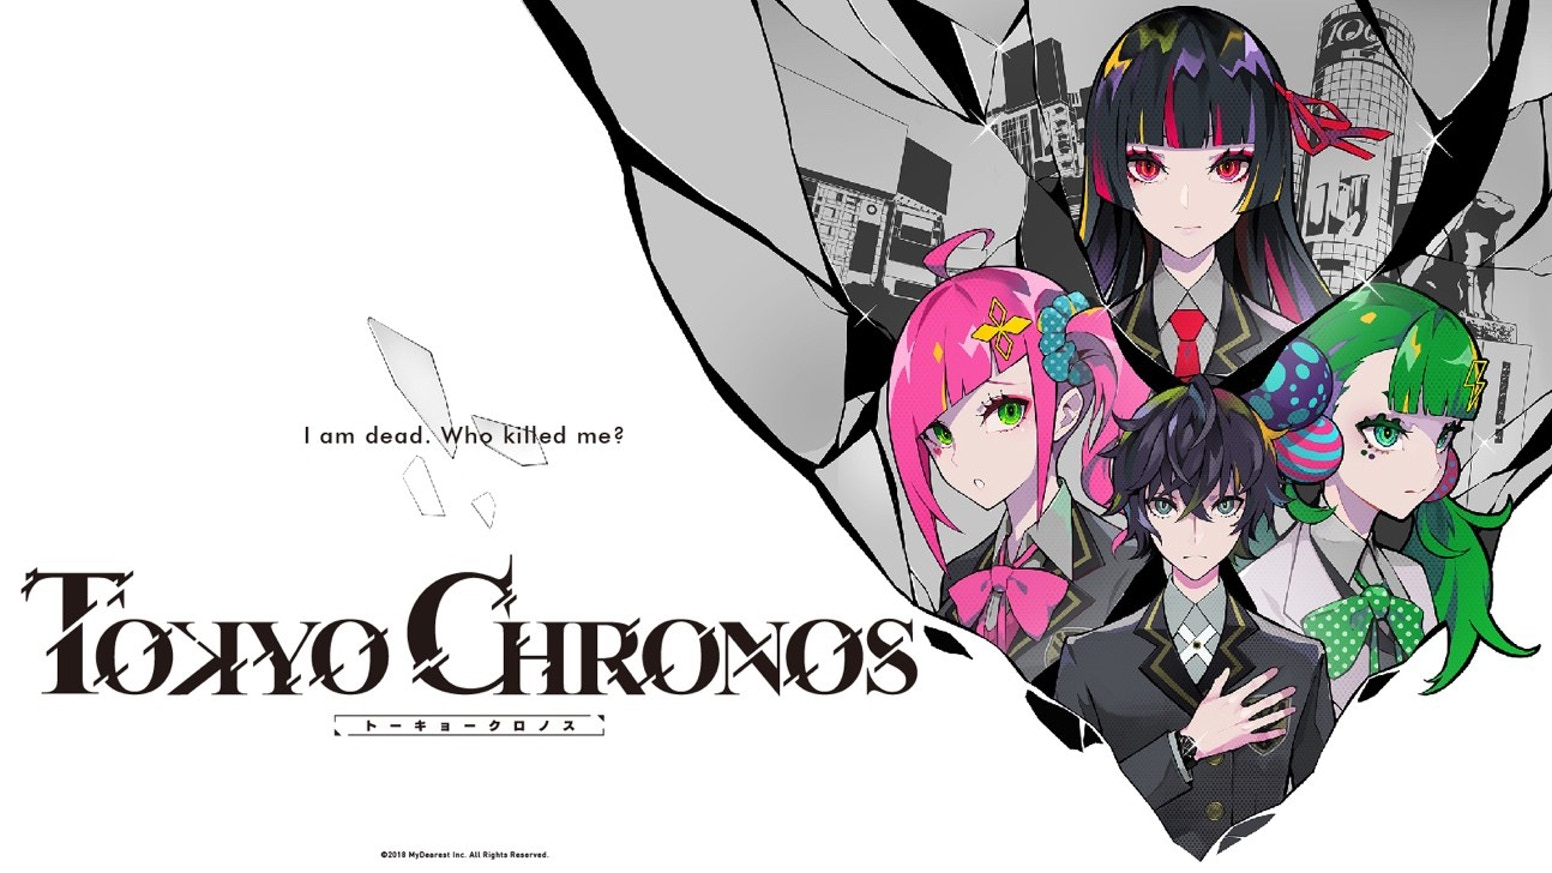 Help Us Fund The Development Of This New VR Visual Novel Game Steam And Playstation